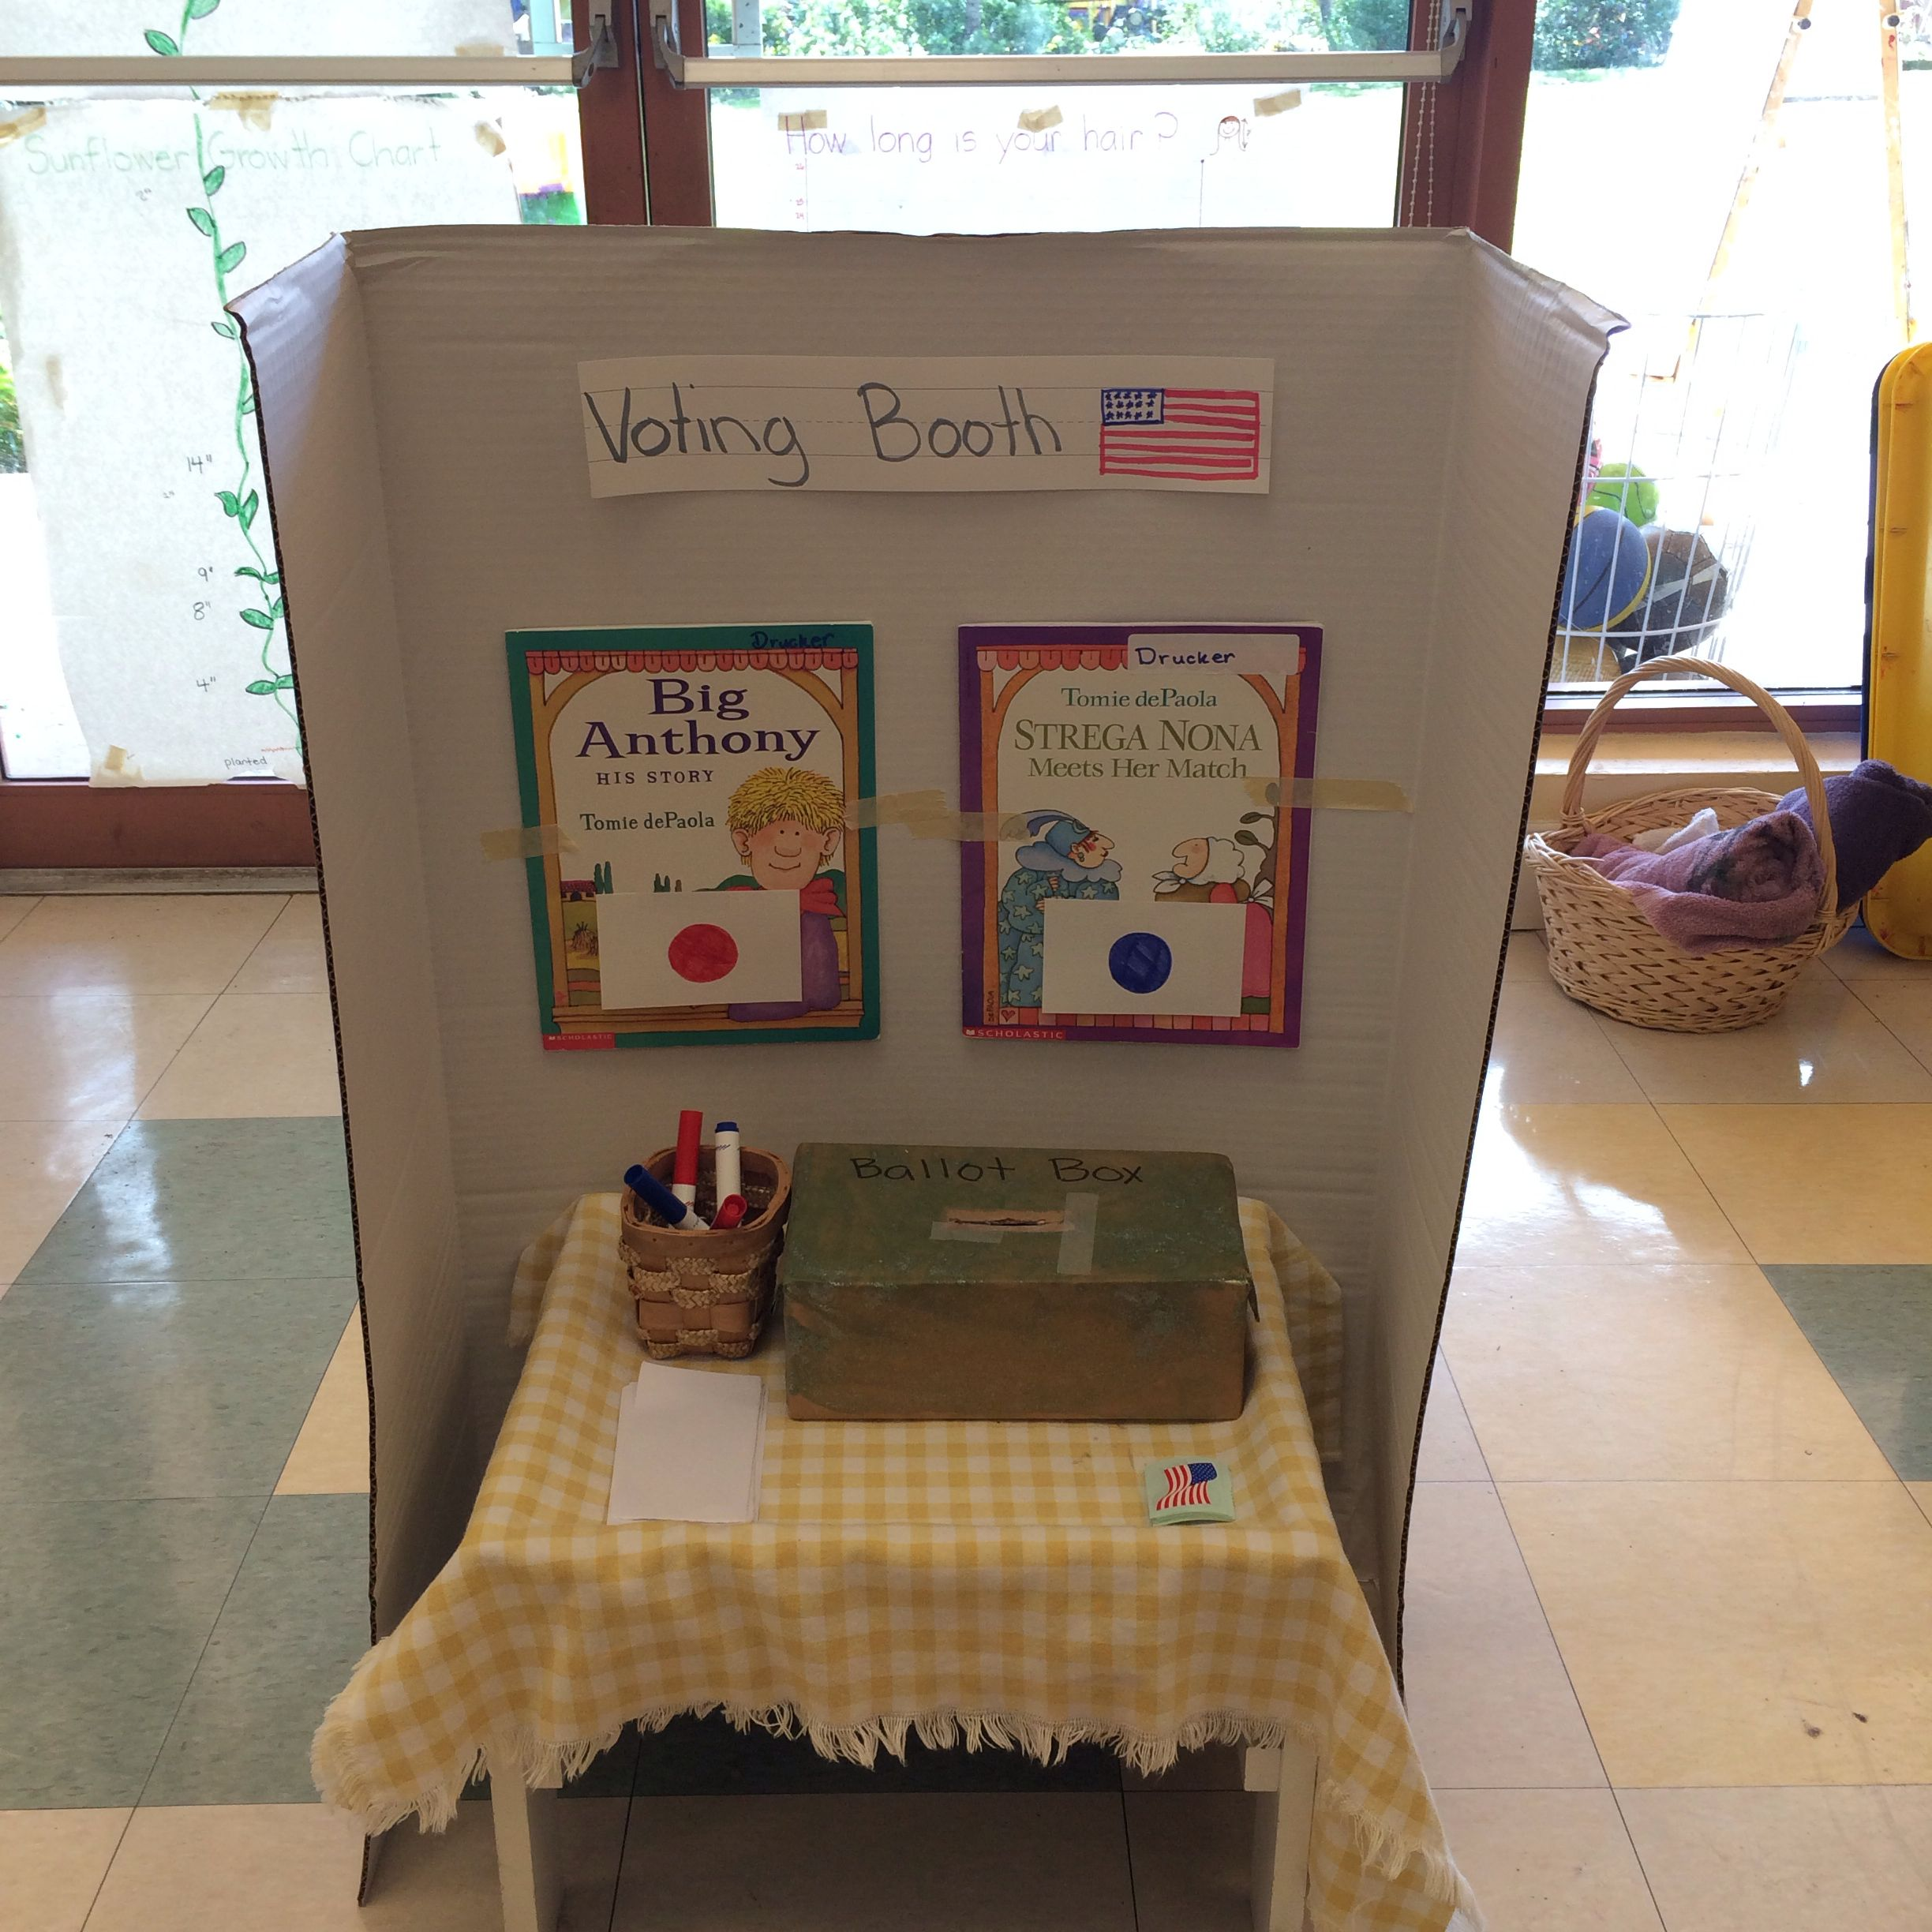 President S Day Voting Booth We Set Up A Voting Booth In